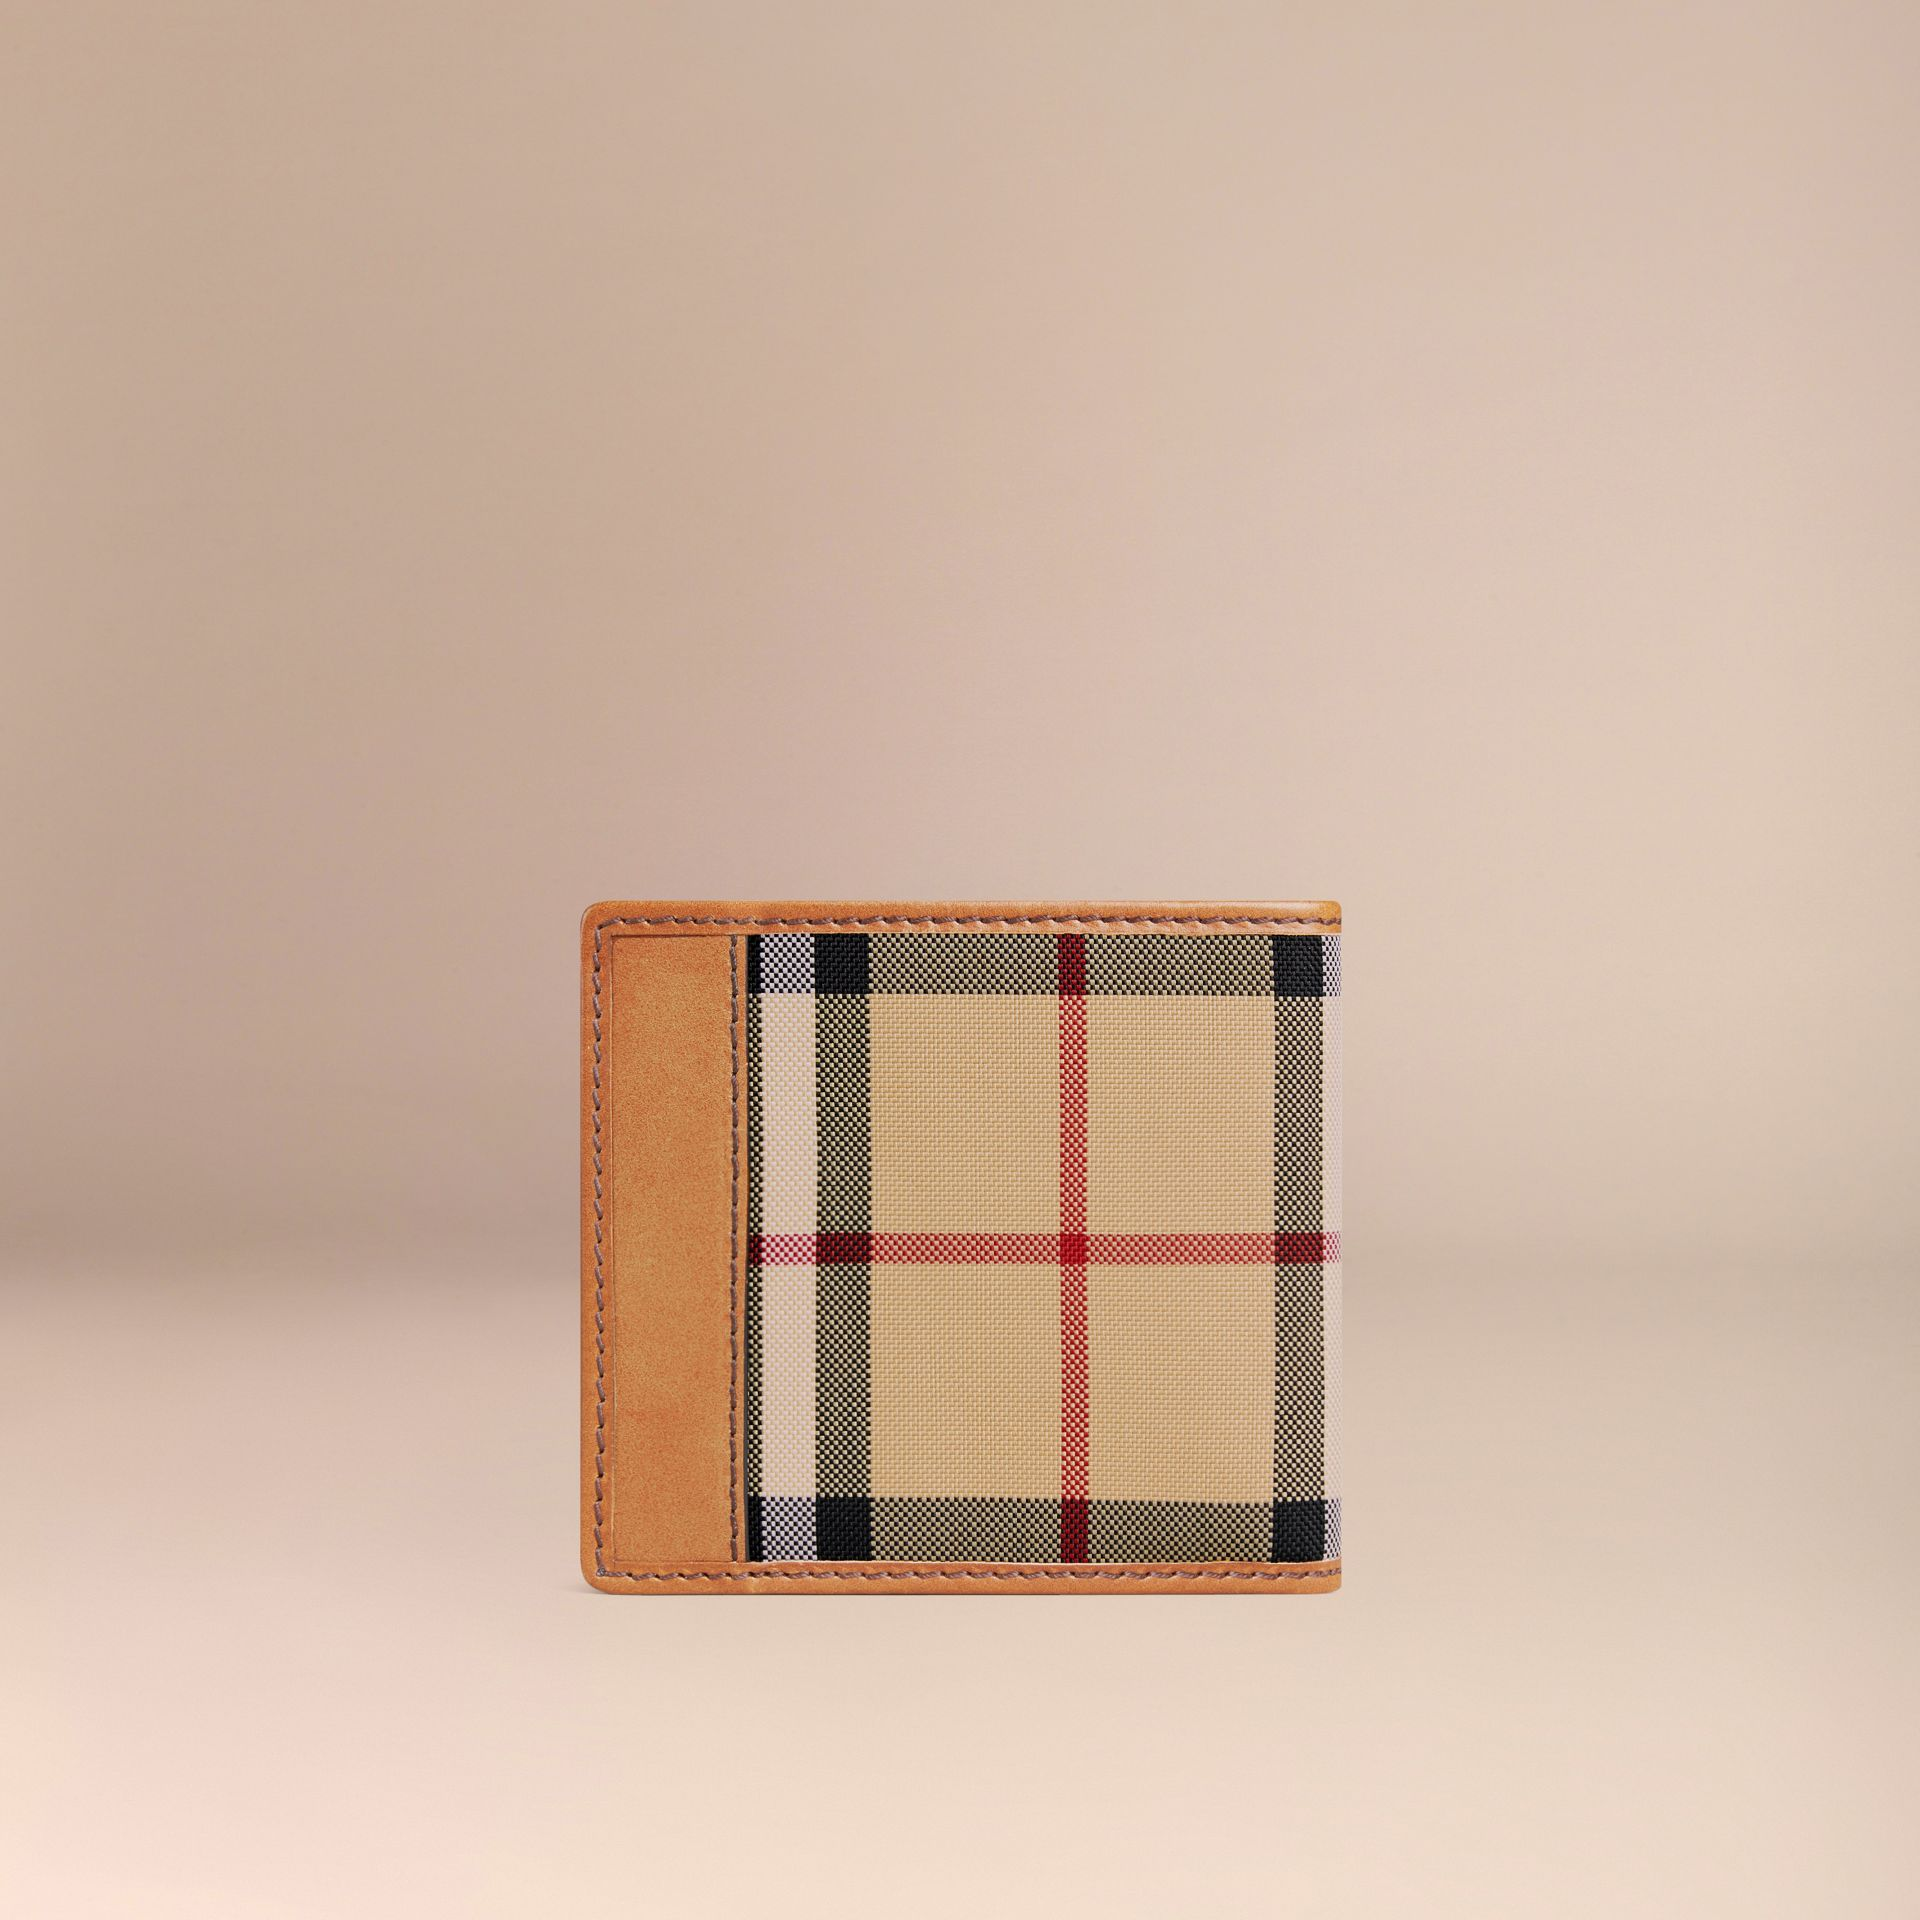 Horseferry Check International Bifold Coin Wallet in Tan - Men | Burberry Australia - gallery image 3